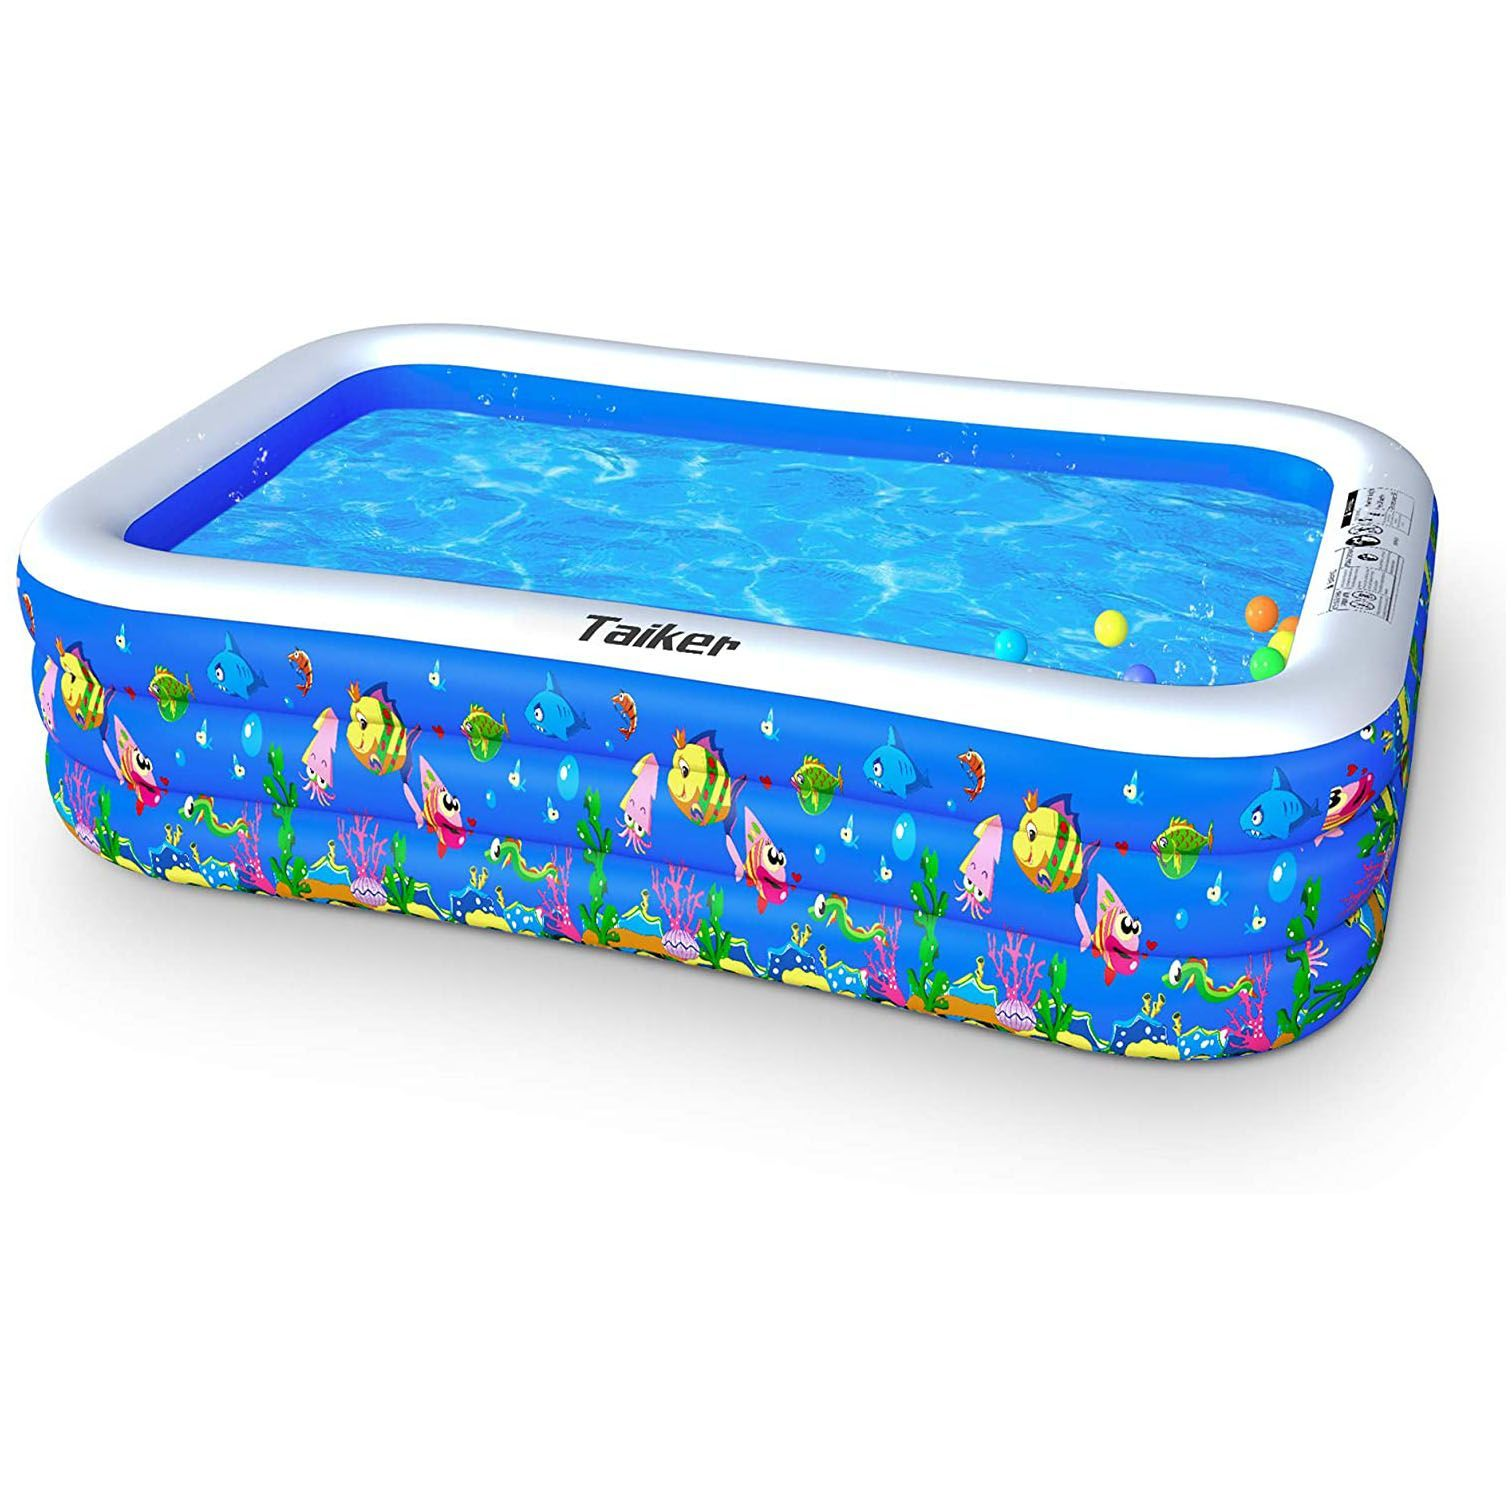 10 Best Inflatable Pools 2021 Blow Up Pools For Adults And Kids